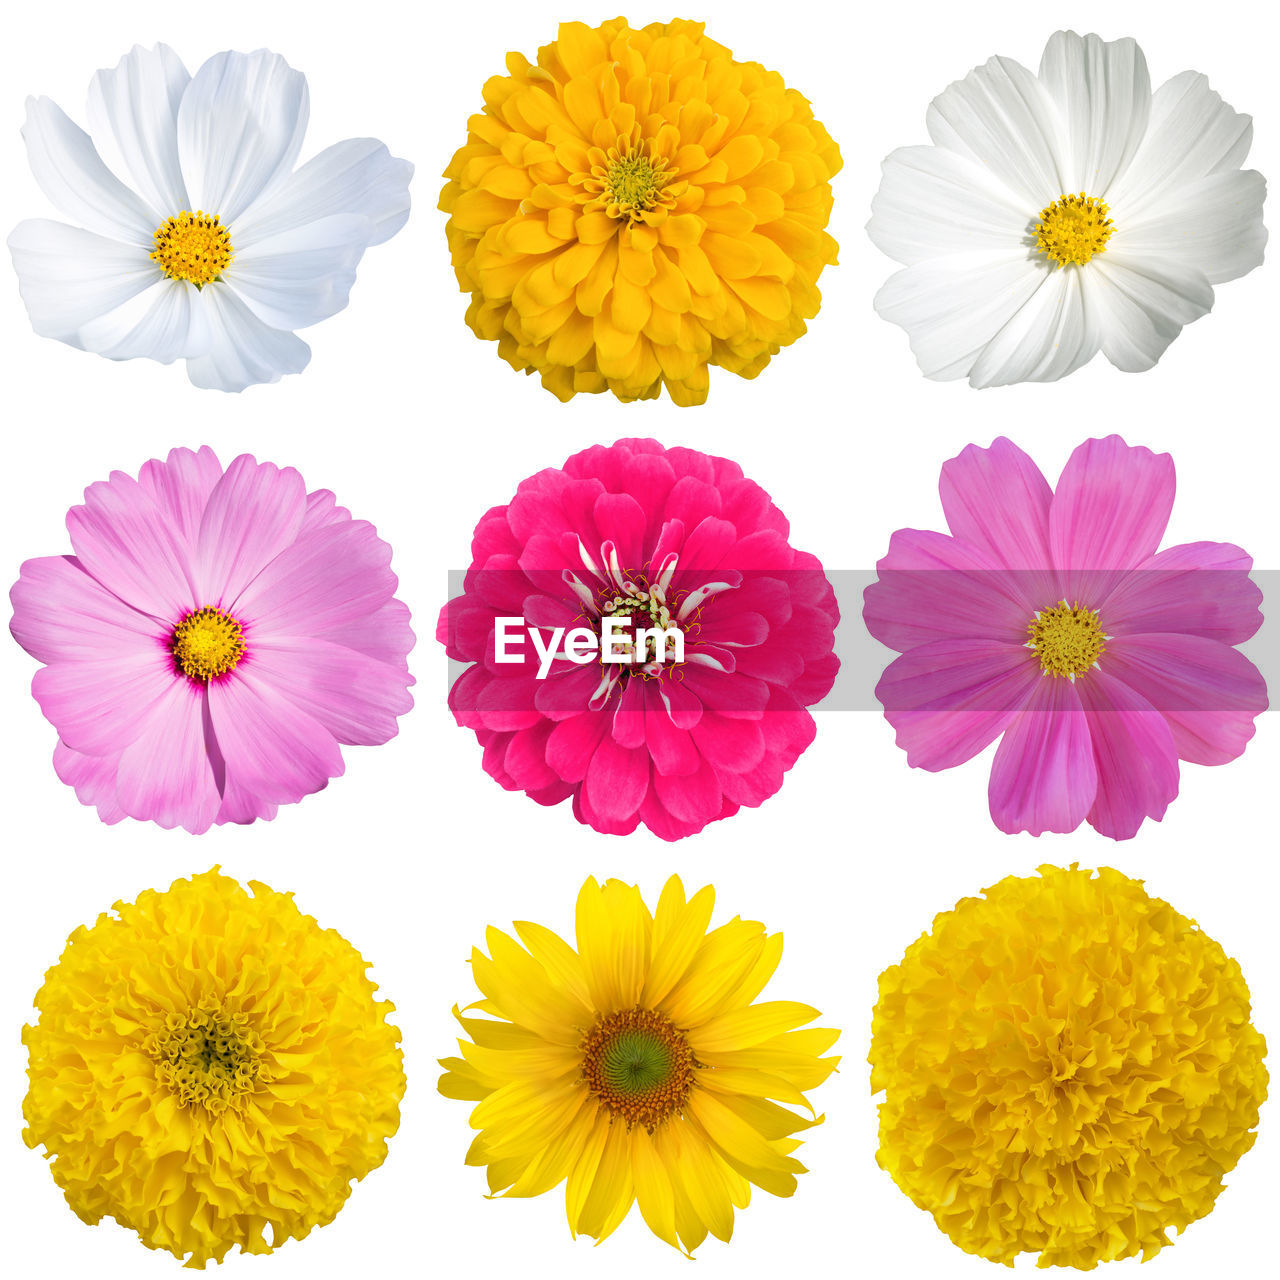 flowering plant, flower, freshness, fragility, vulnerability, flower head, beauty in nature, inflorescence, petal, plant, yellow, close-up, pink color, no people, studio shot, white background, nature, growth, multi colored, arrangement, flower arrangement